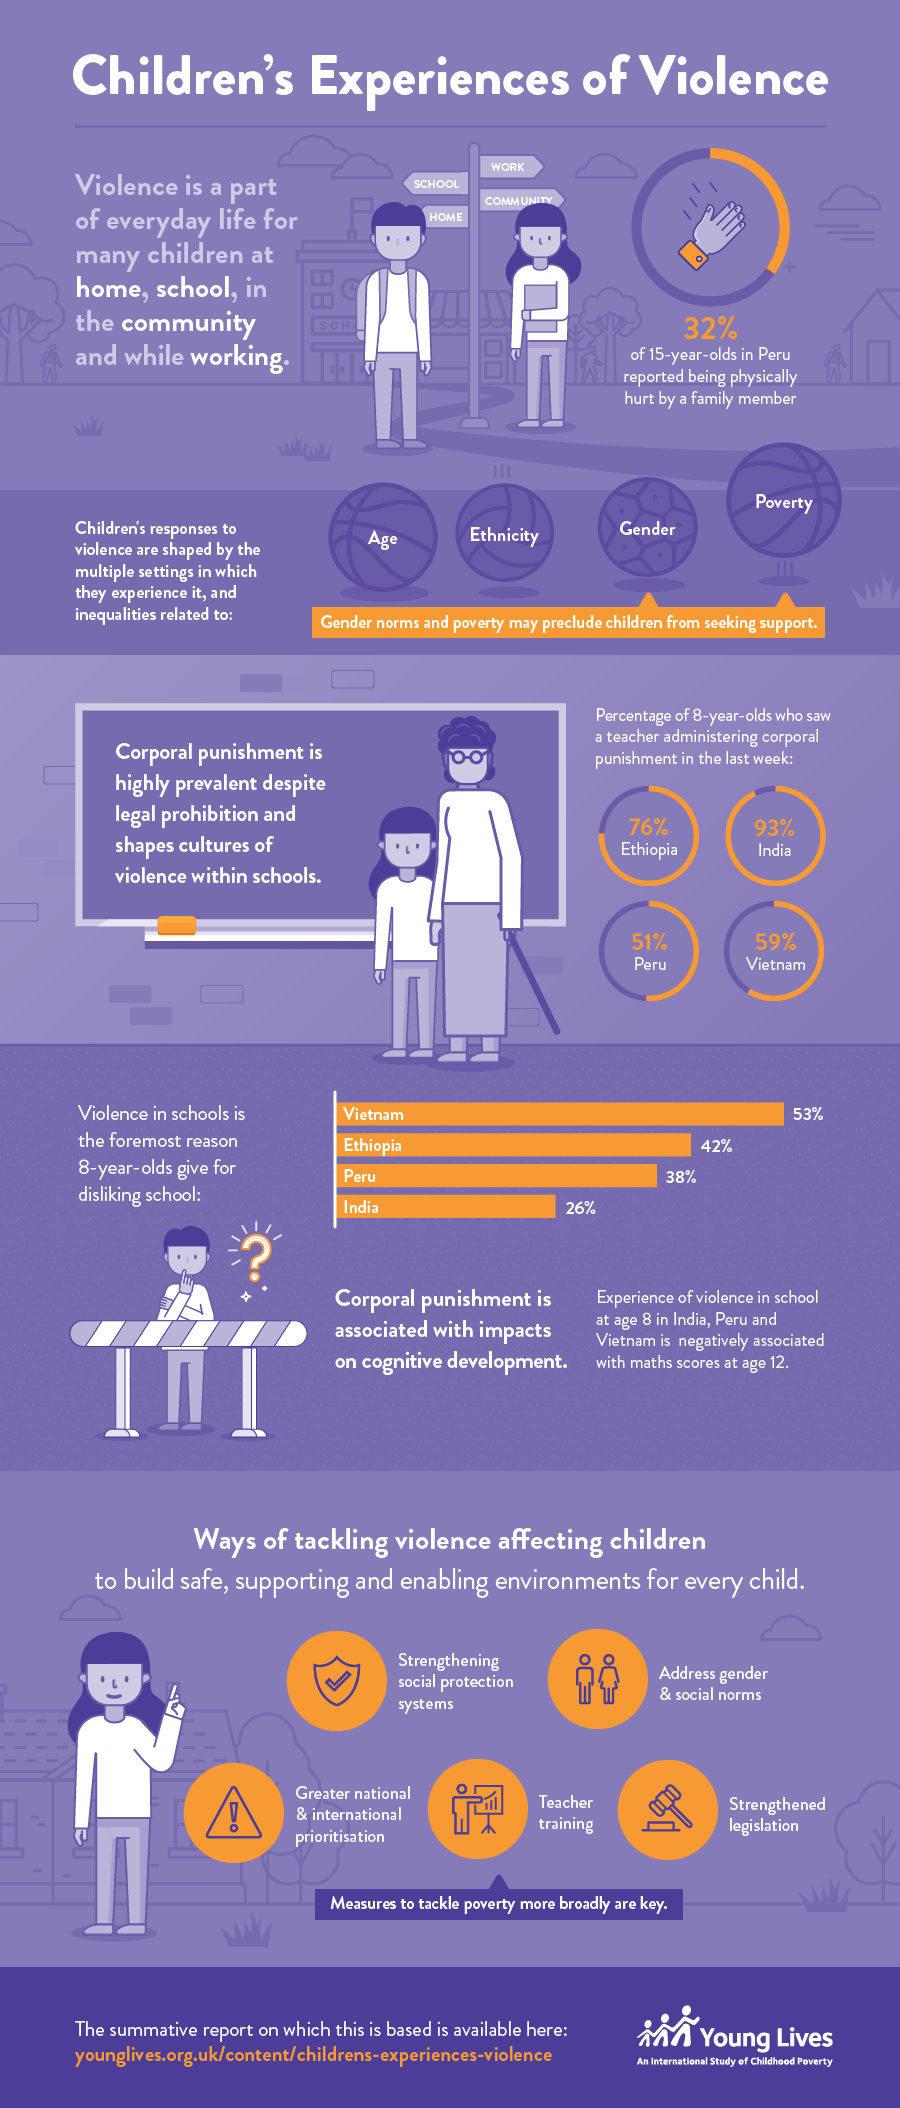 Children's Experiences of Violence infographic